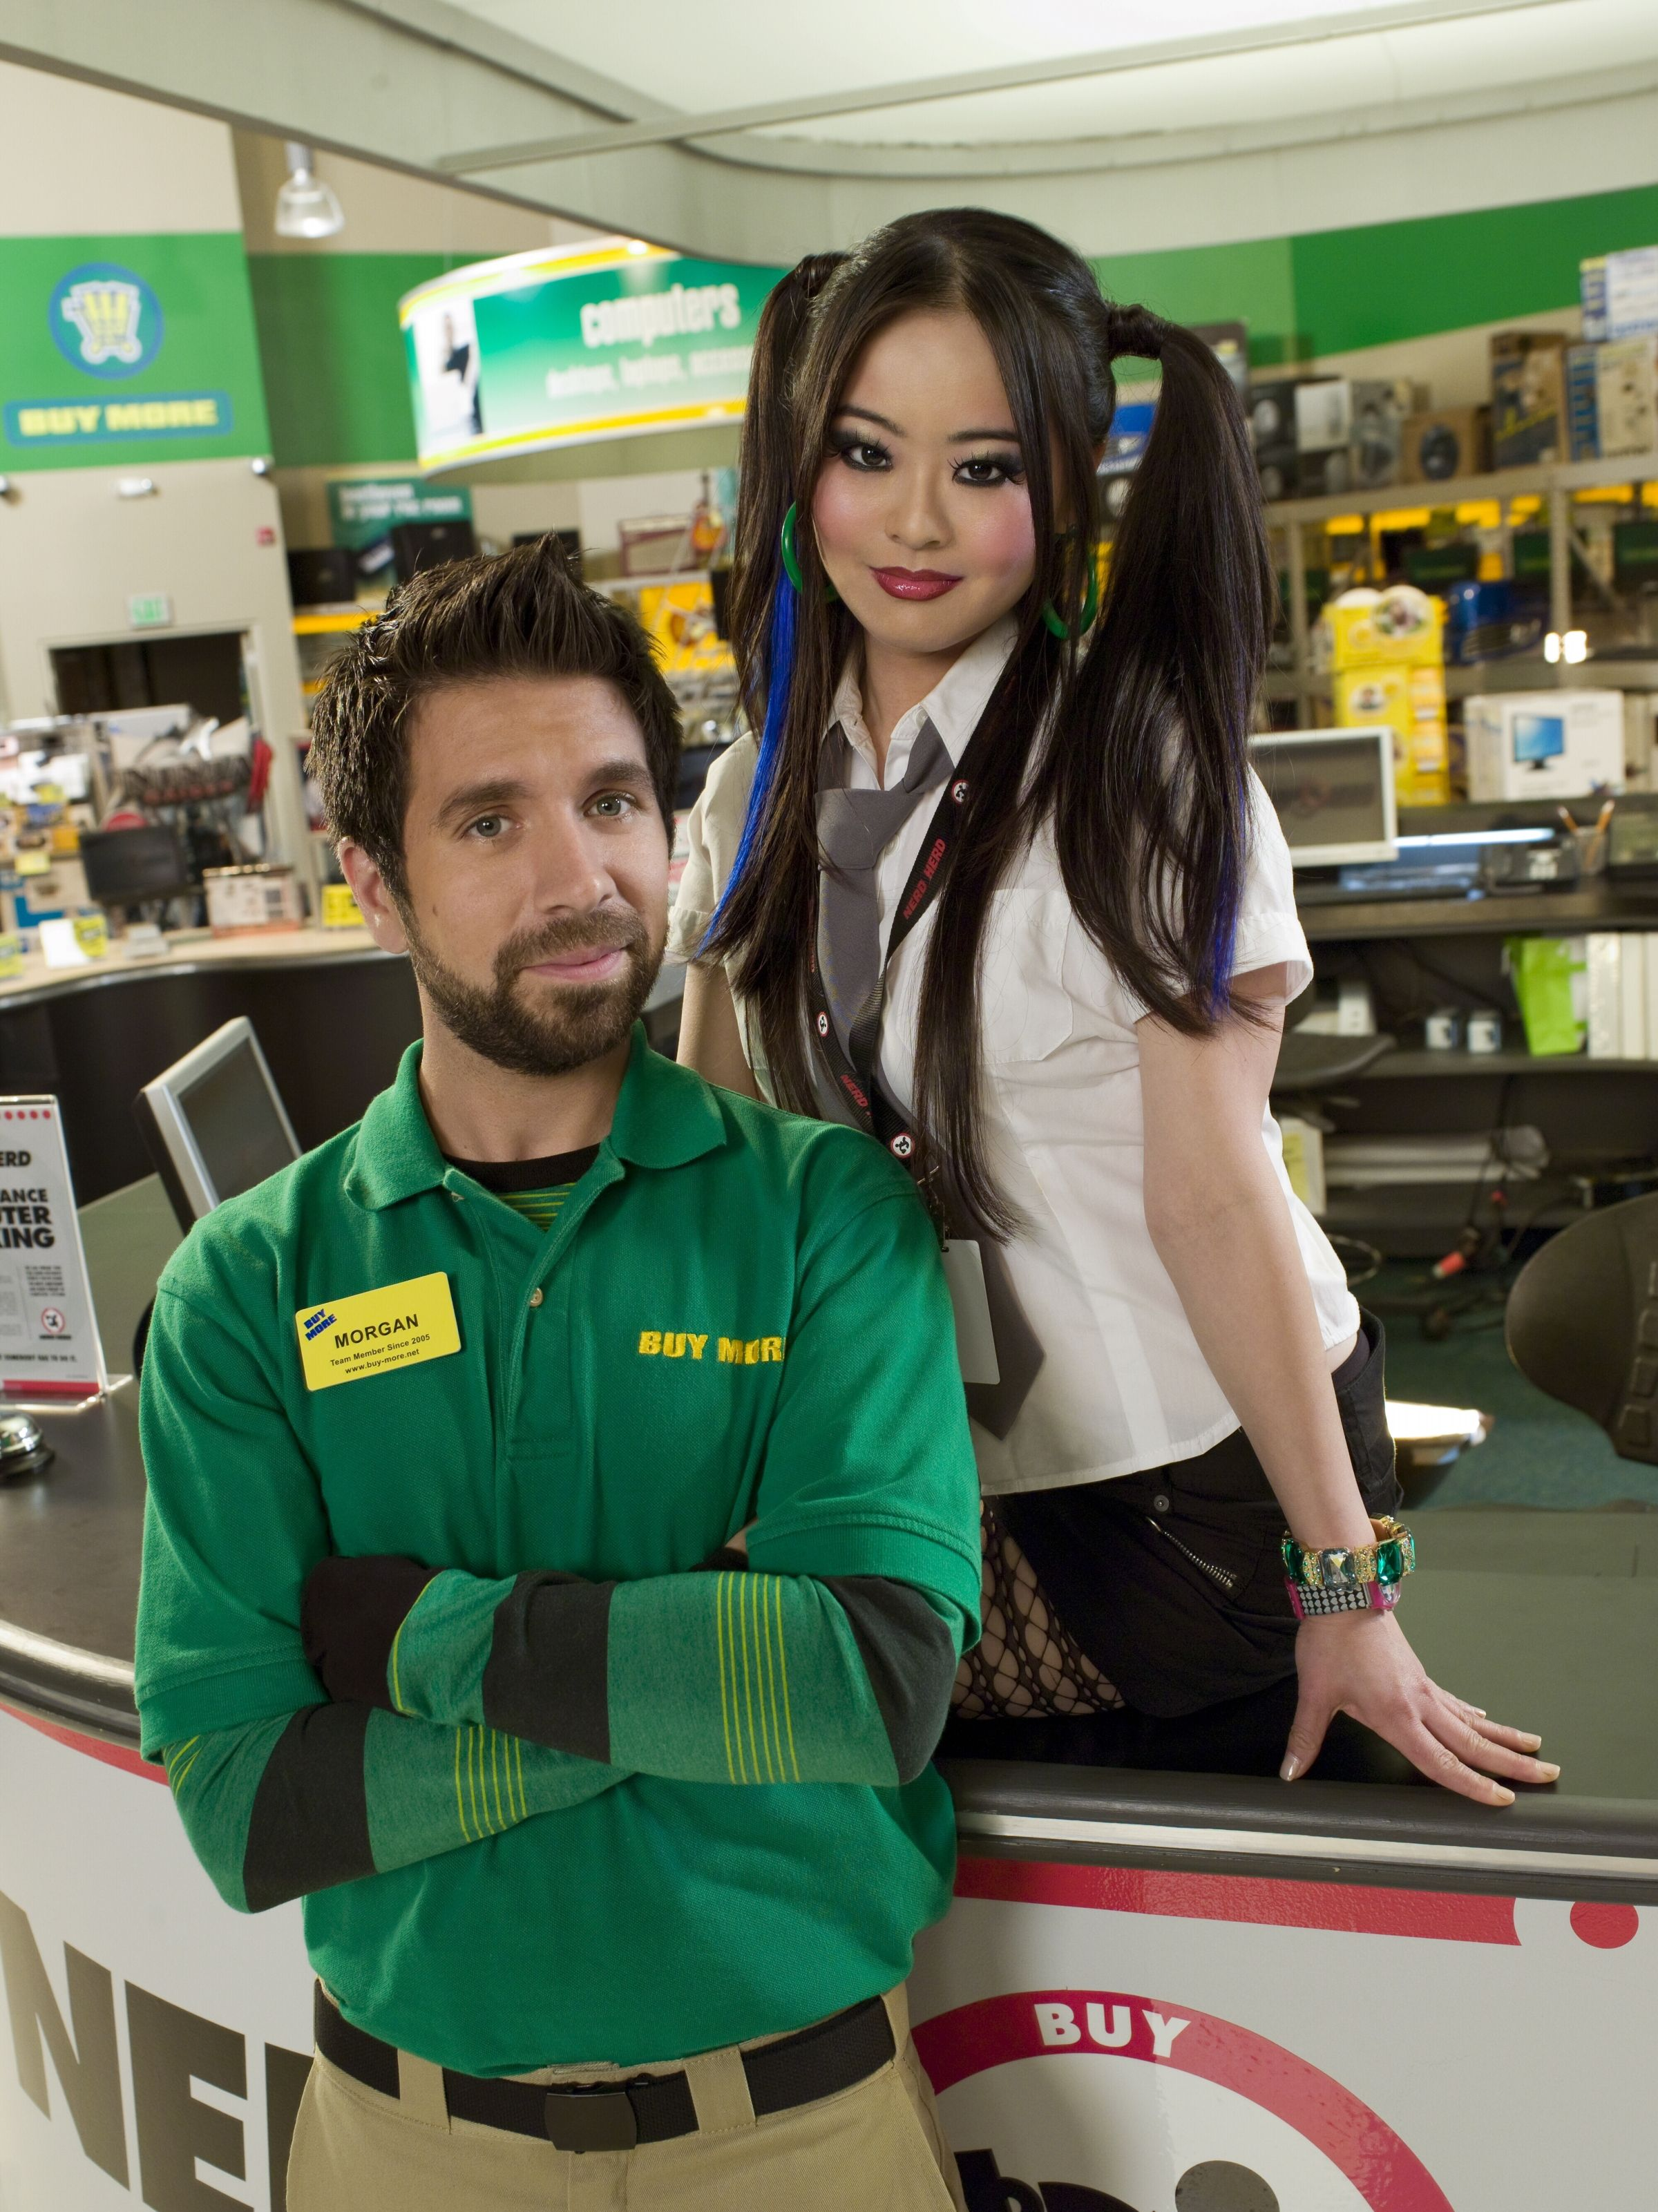 Joshua Gomez As Morgan Grimes On The Tv Series Chuck Chuck Tv Show Chucks Chuck Sarah Joshua gomez was born on november 20, 1975 in bayonne, new jersey, usa as joshua eli gomez. joshua gomez as morgan grimes on the tv